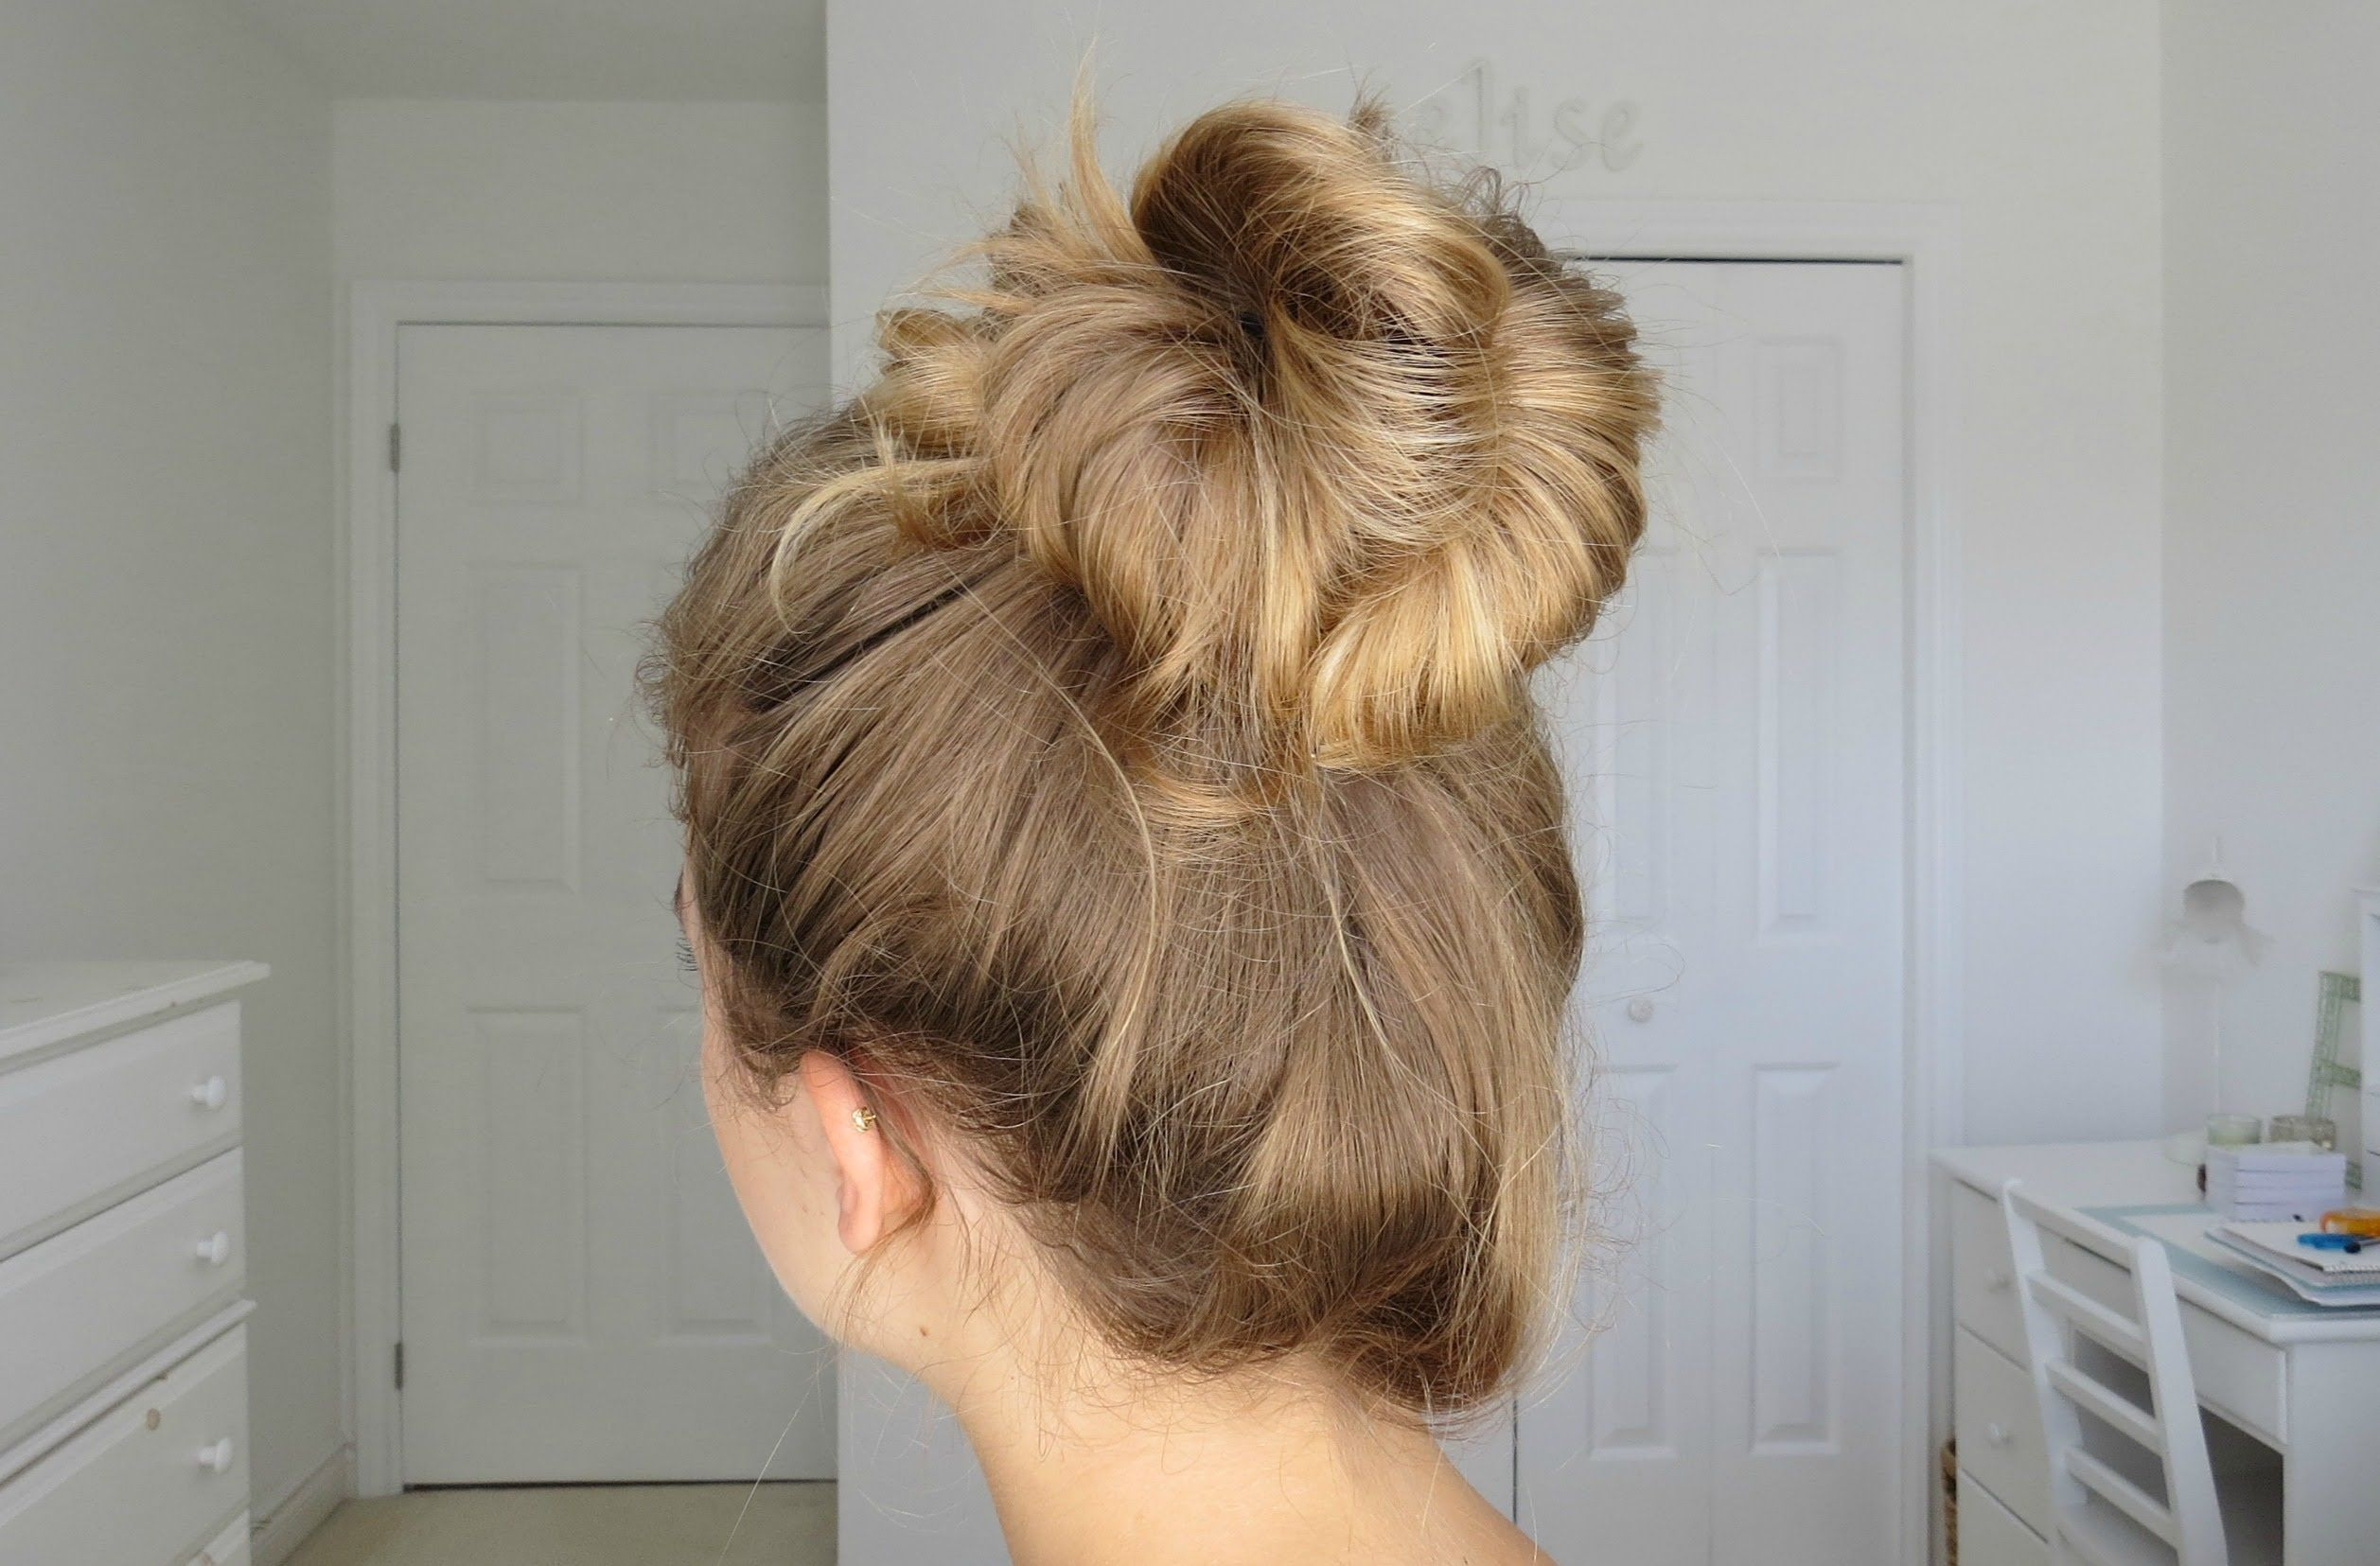 Simple Messy Bun Tutorial Quick Easy Youtube Messy Bun Tutorial Hair Styles Hair Tutorial